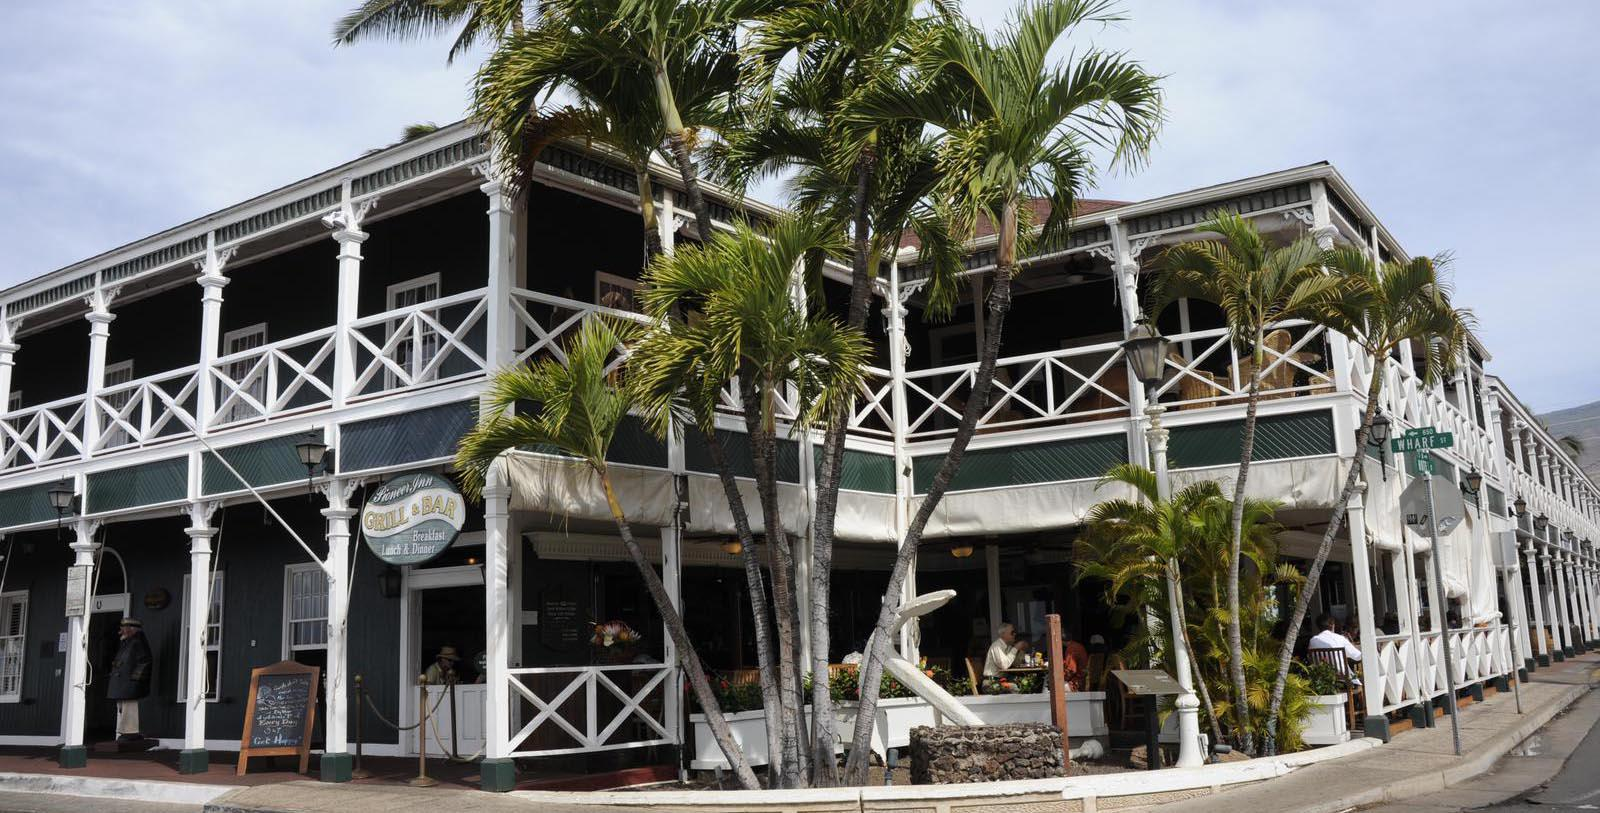 Image of Exterior of Pioneer Inn, 1901, Member Historic Hotels of America, in Lahaina, Hawaii, Overview